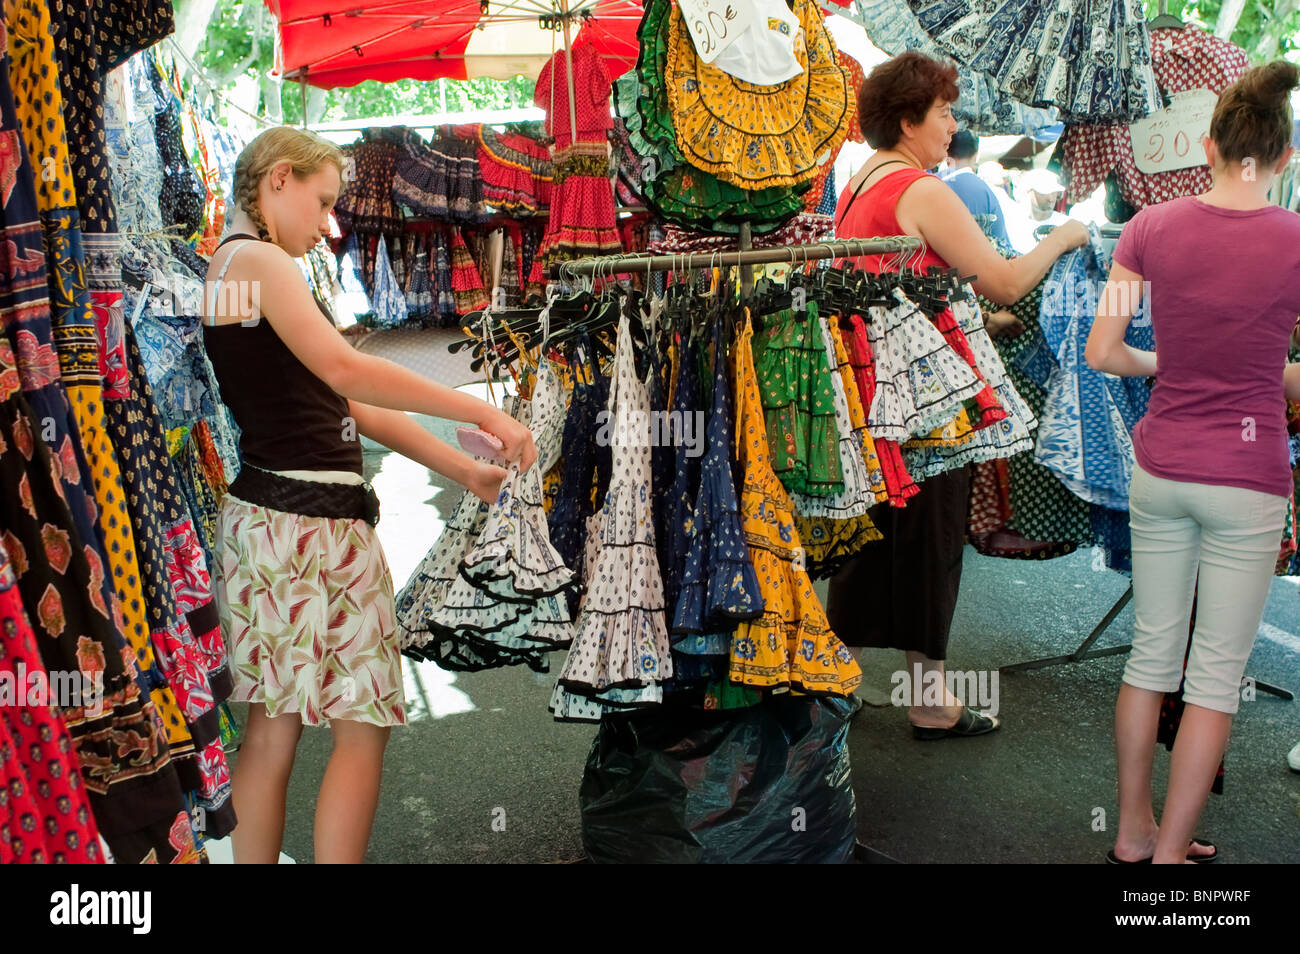 Arles, France, Tourists Teenagers Shopping in Local Provincial Stores, Locally Made Clothing, Souvenirs on Street - Stock Image